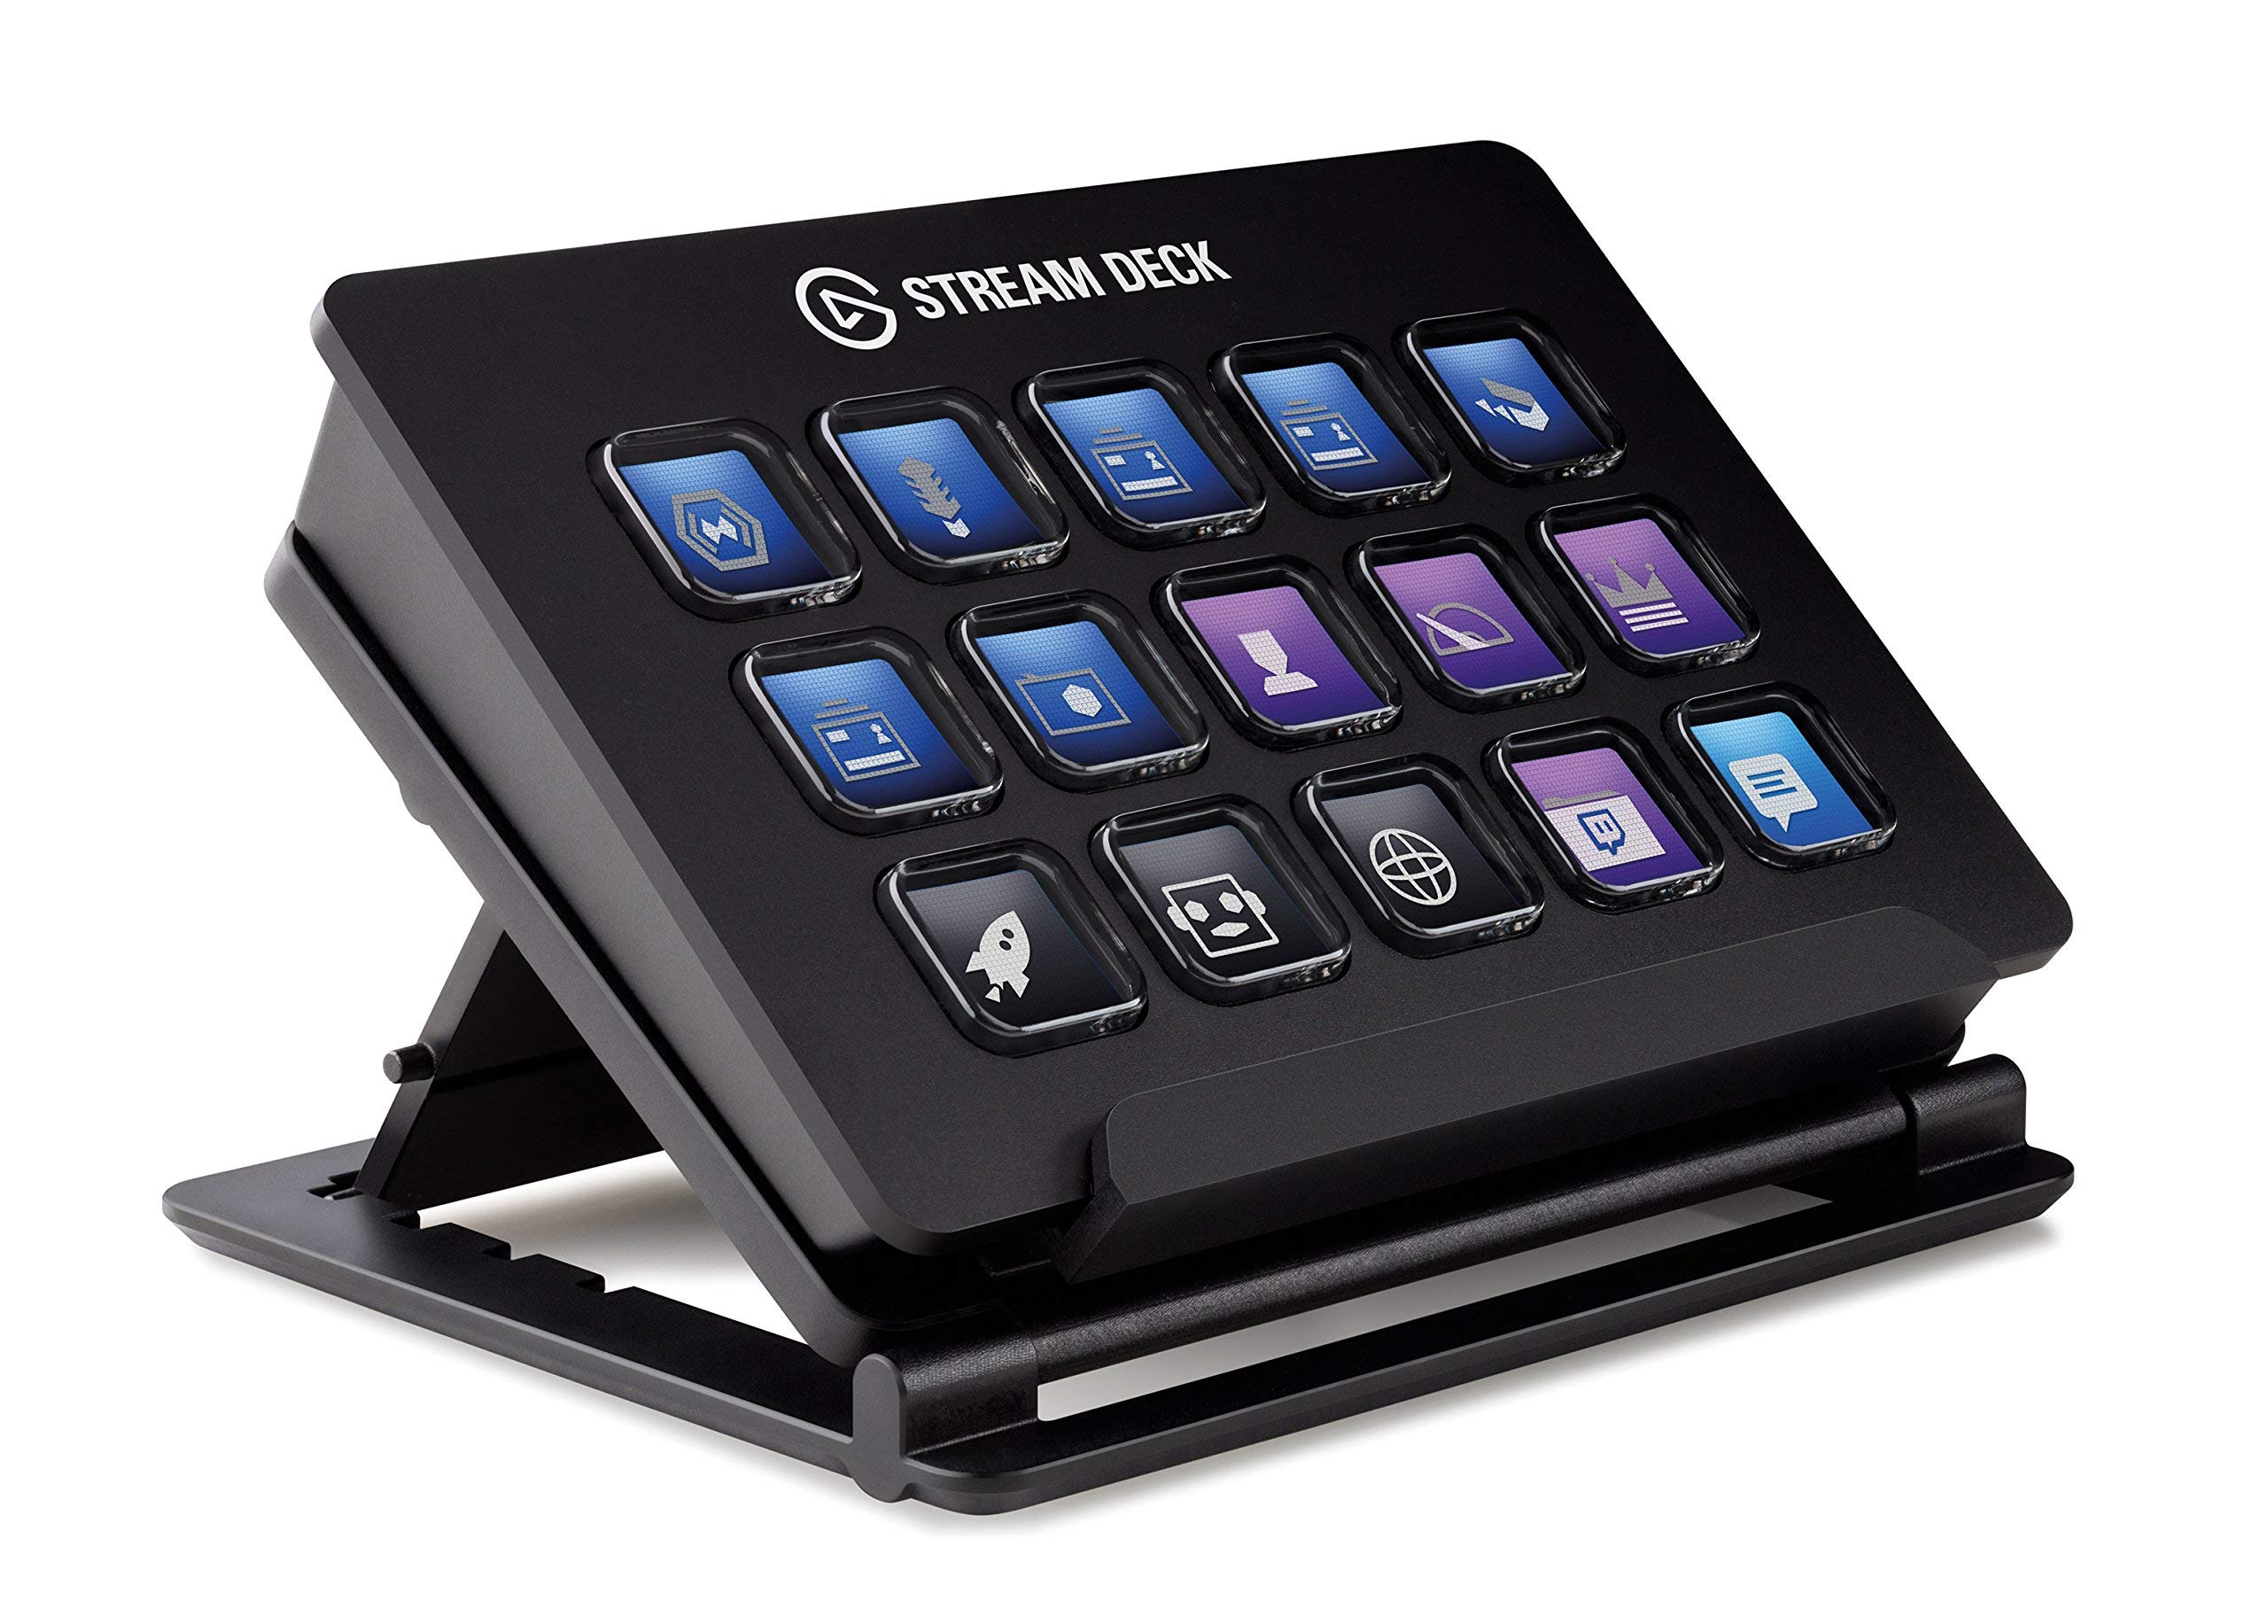 Elgato Stream Deck - Live Content Creation Controller with 15 Customizable LCD Keys, Adjustable Stand, for Windows 10 and macOS 10.11 or Later (Renewed)